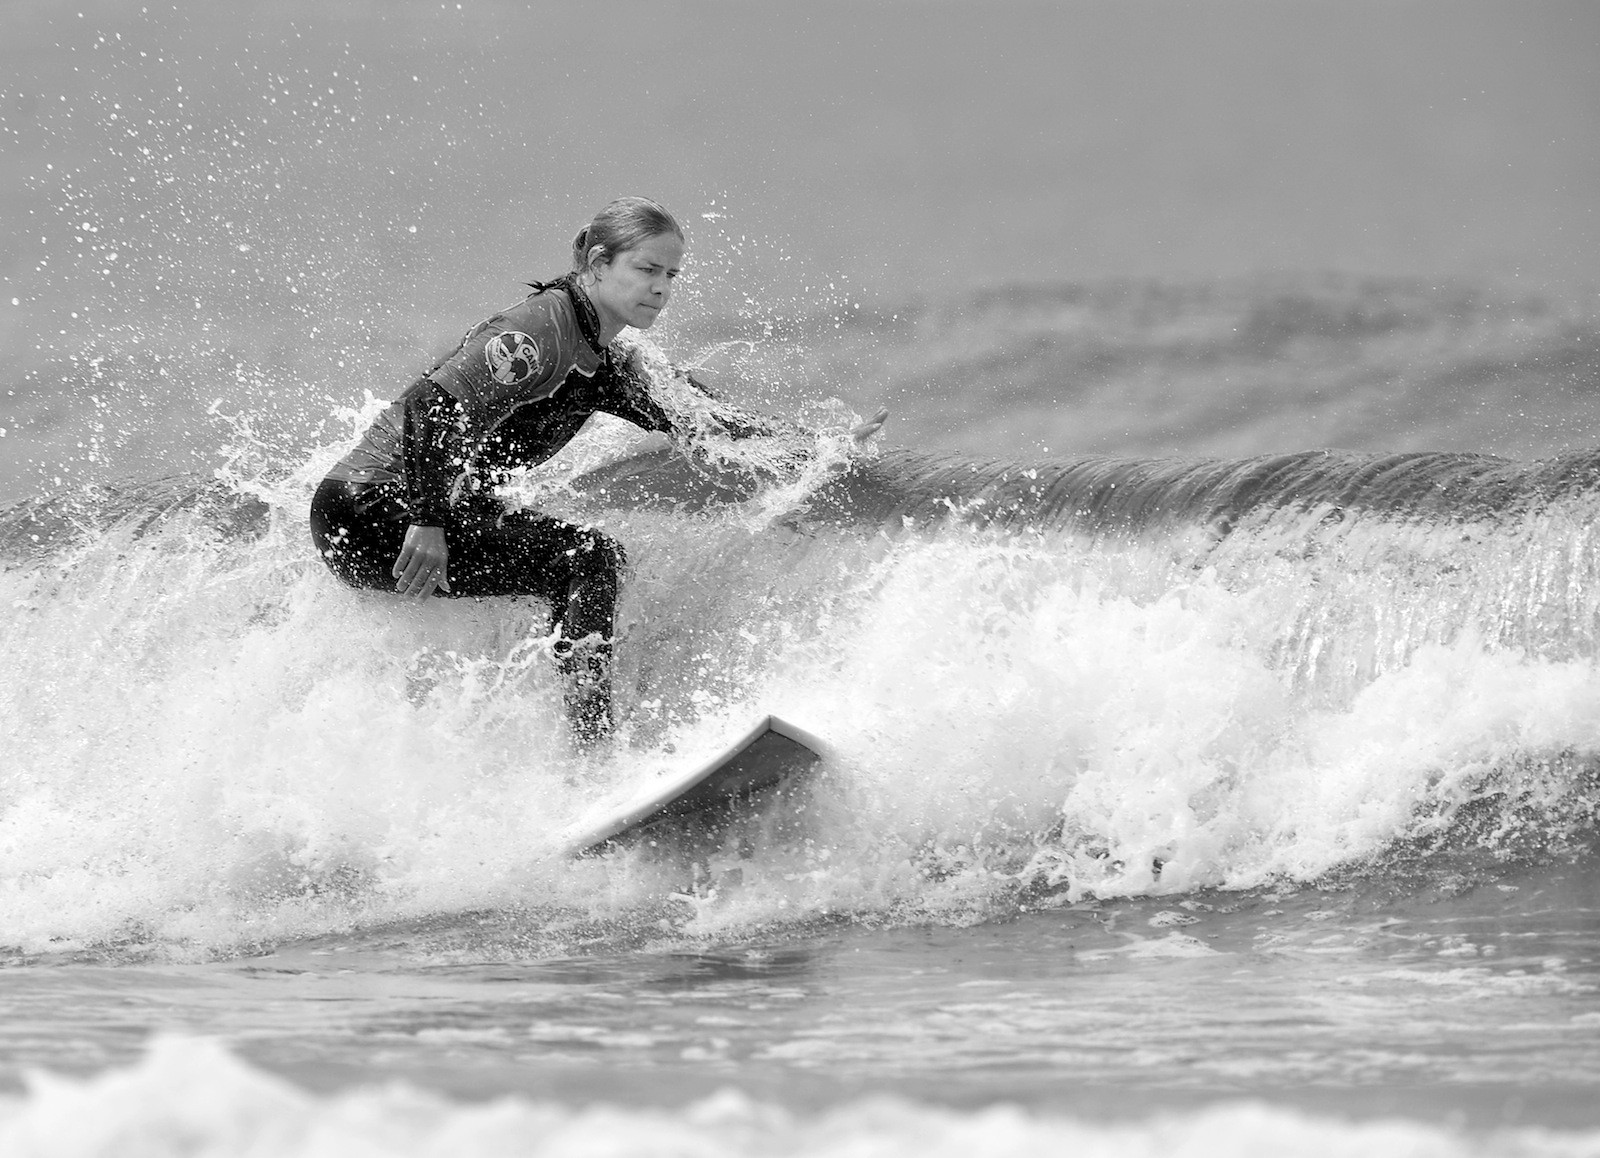 MONO - Surfer by Rowland White ( 12 marks)